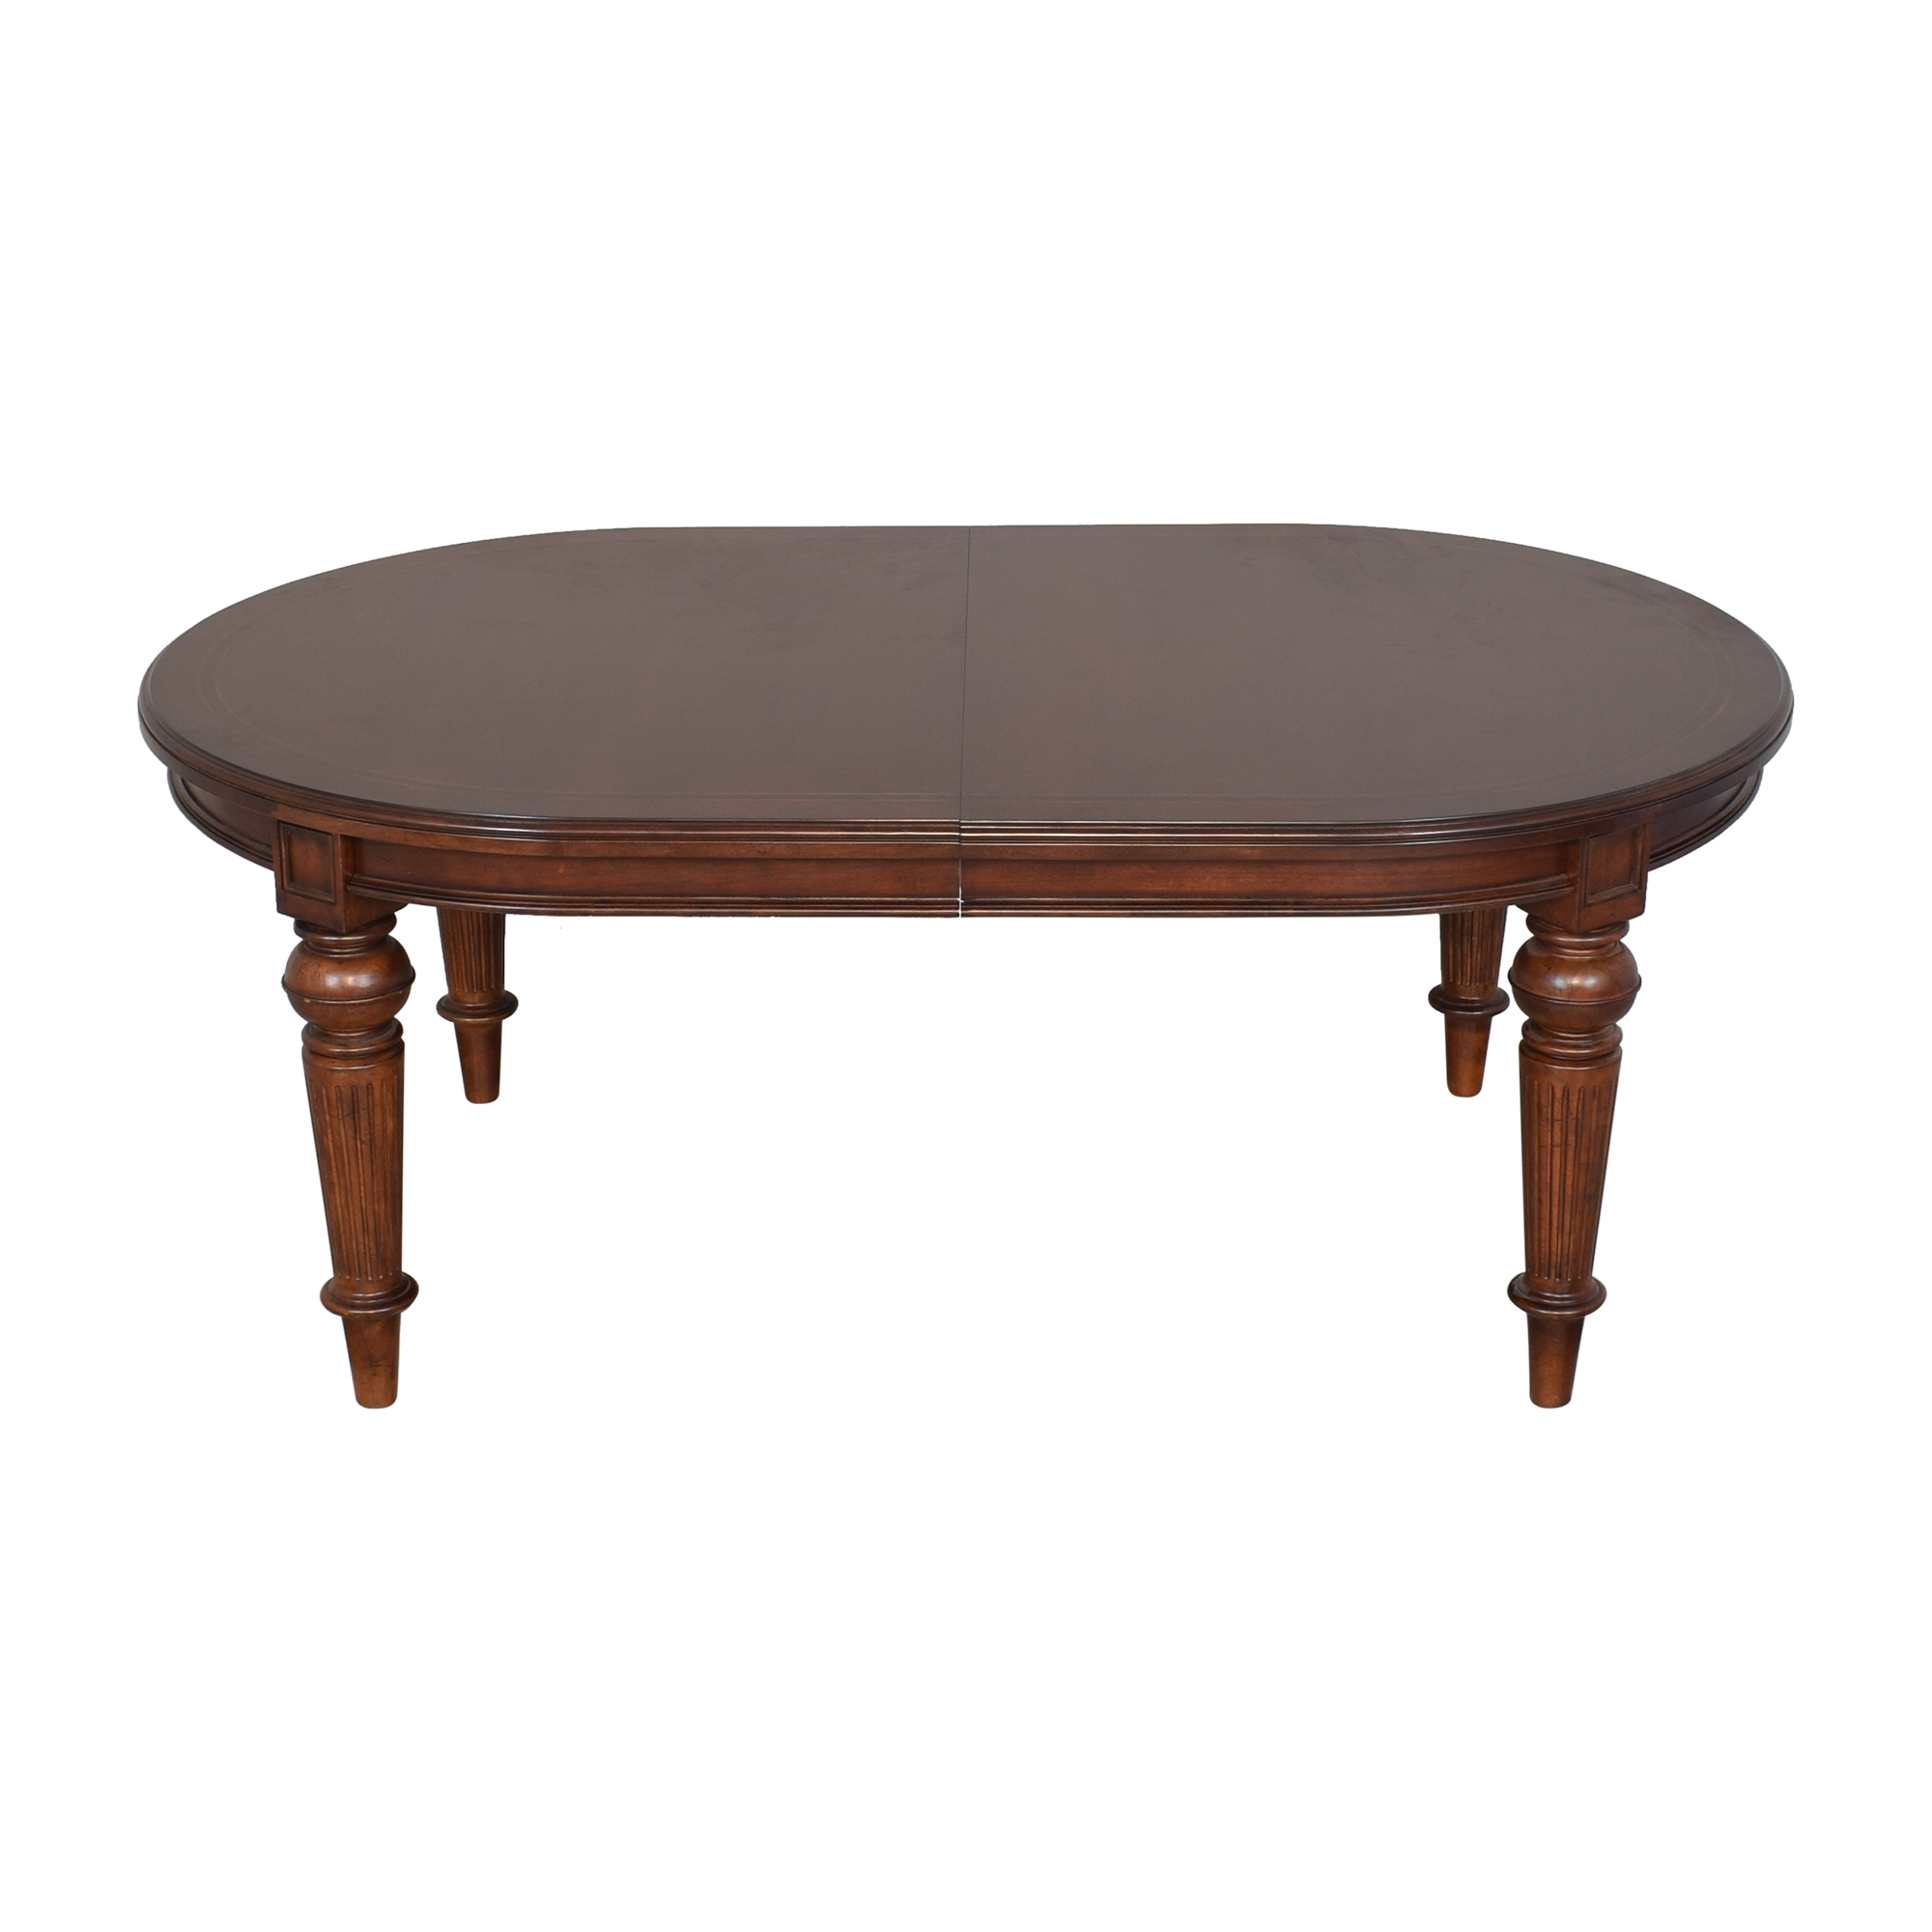 Thomasville Thomasville Expandable Oval Dining Table ct